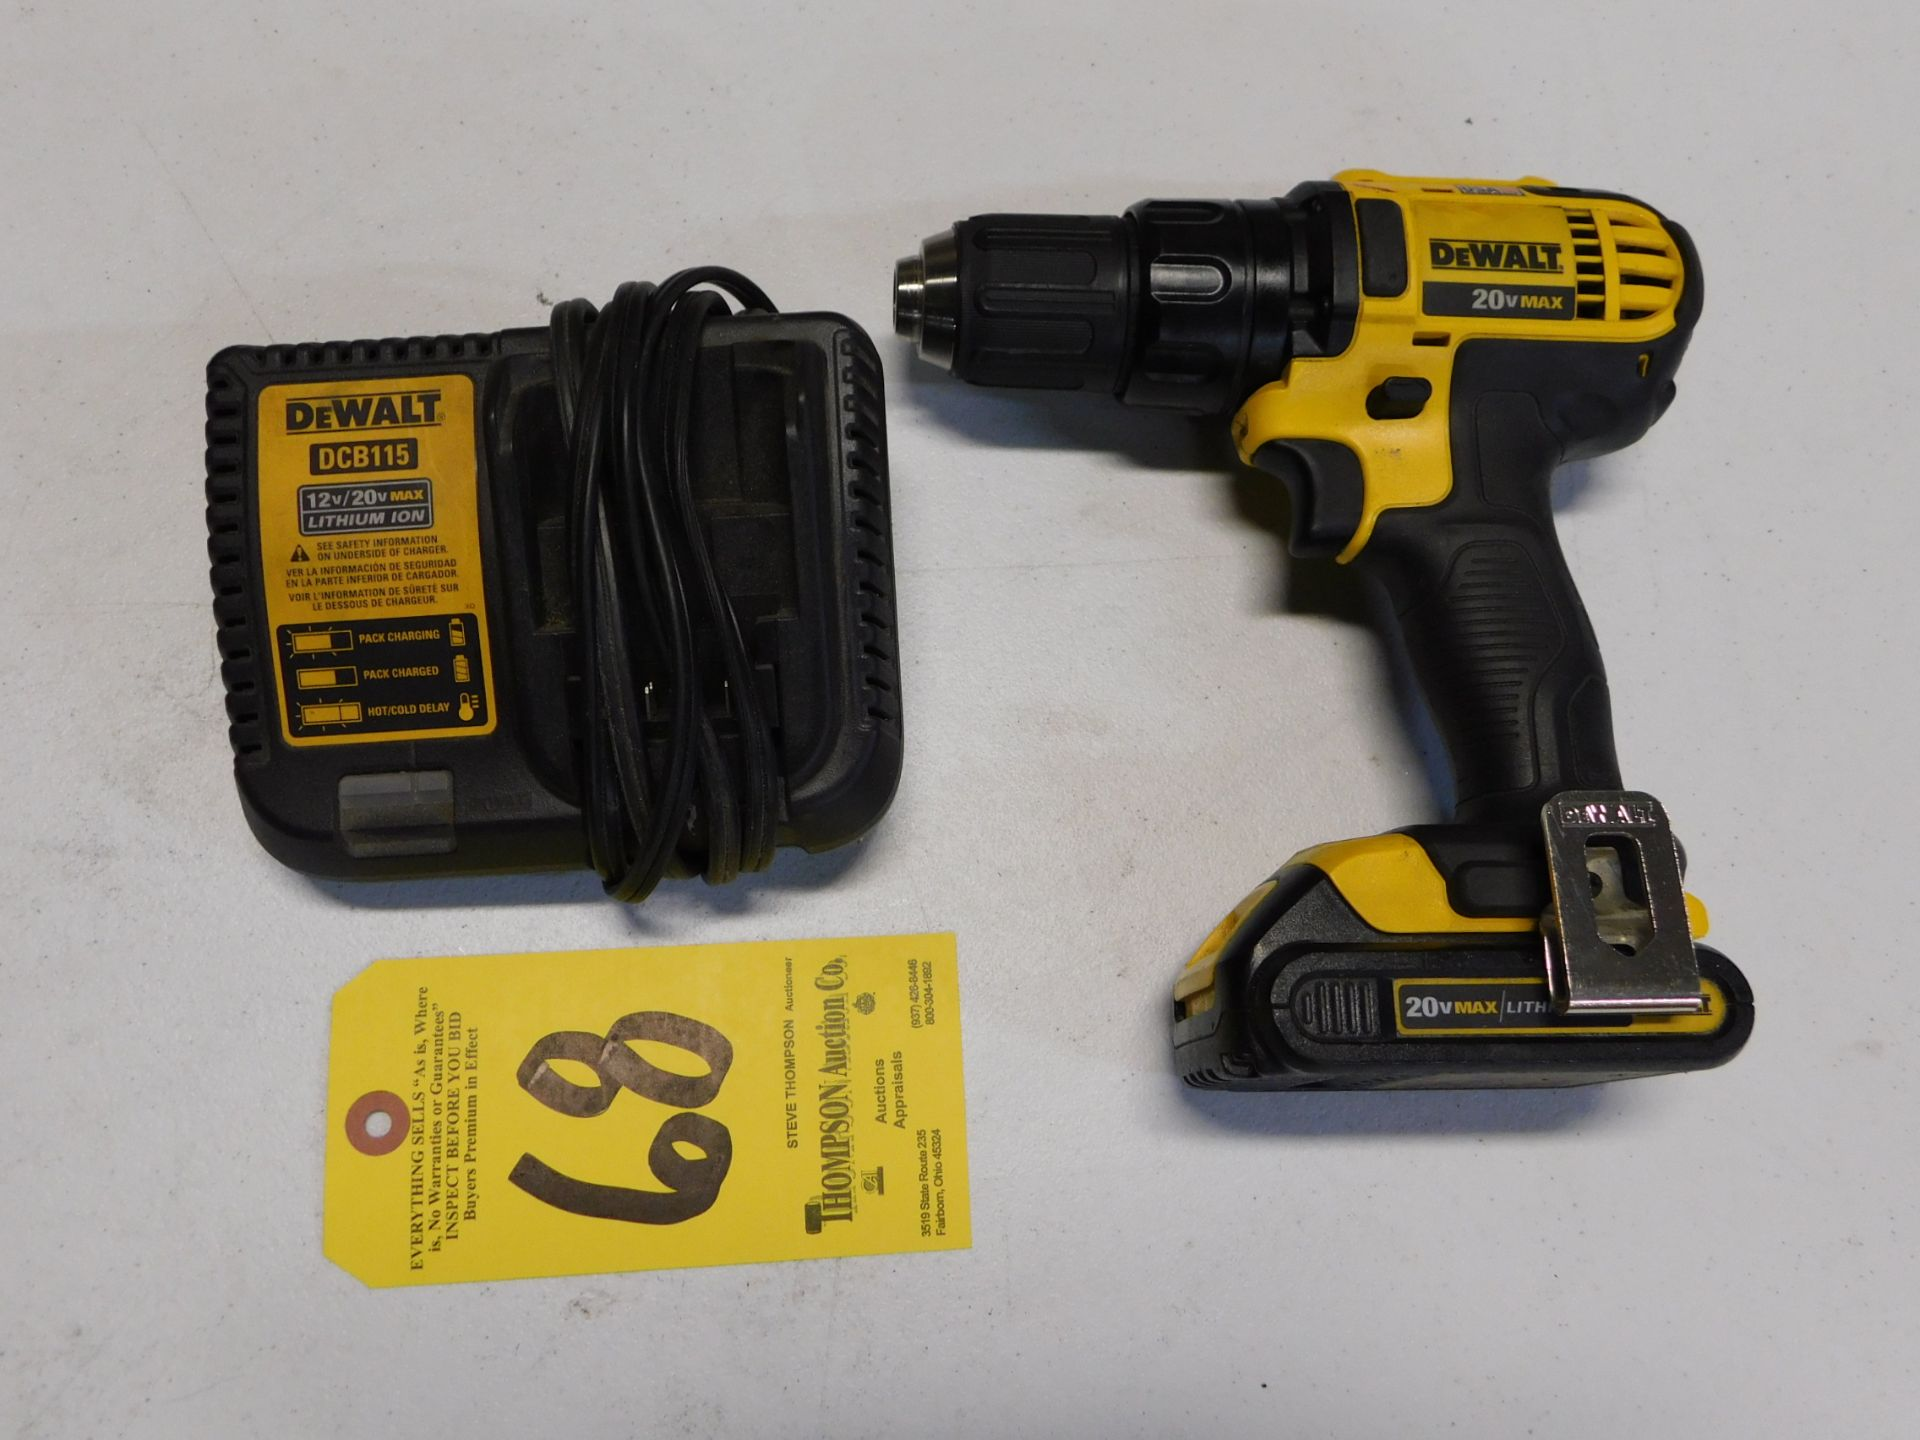 "Lot 68 - Dewalt DCD780 1/2"" Cordless 20V Drill with Battery and Charger, Lot Location 3204 Olympia Dr. A,"